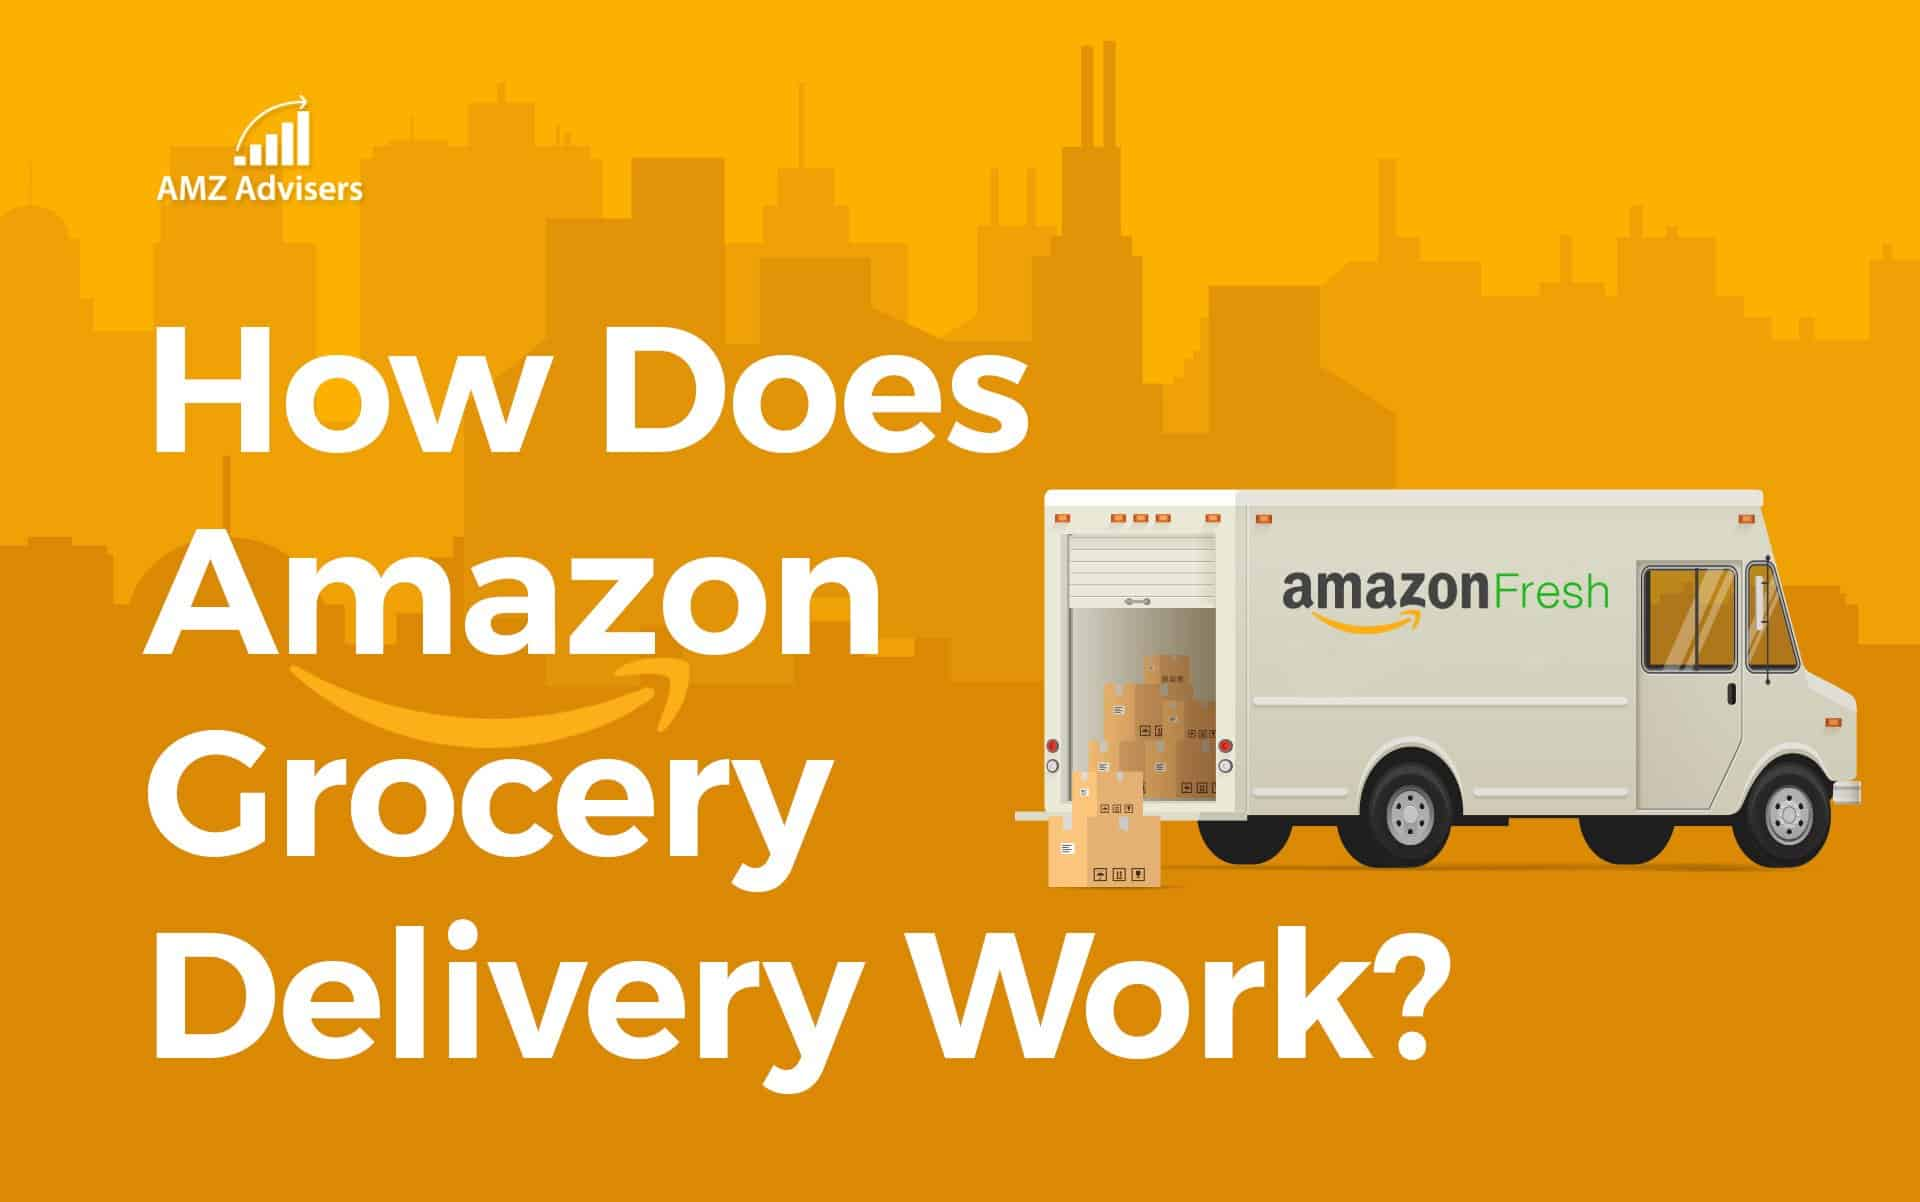 How-Does-Amazon-Grocery-Delivery-Work-.jpg